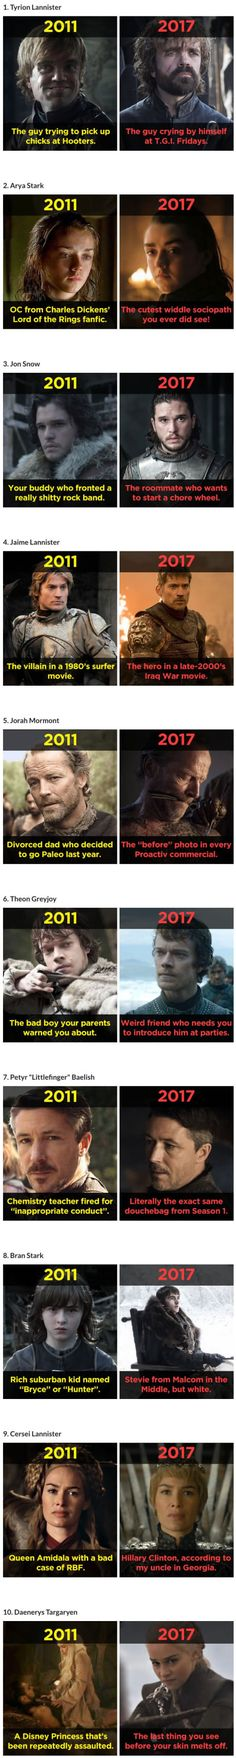 Game Of Thrones Characters' Evolution In 7 Seasons